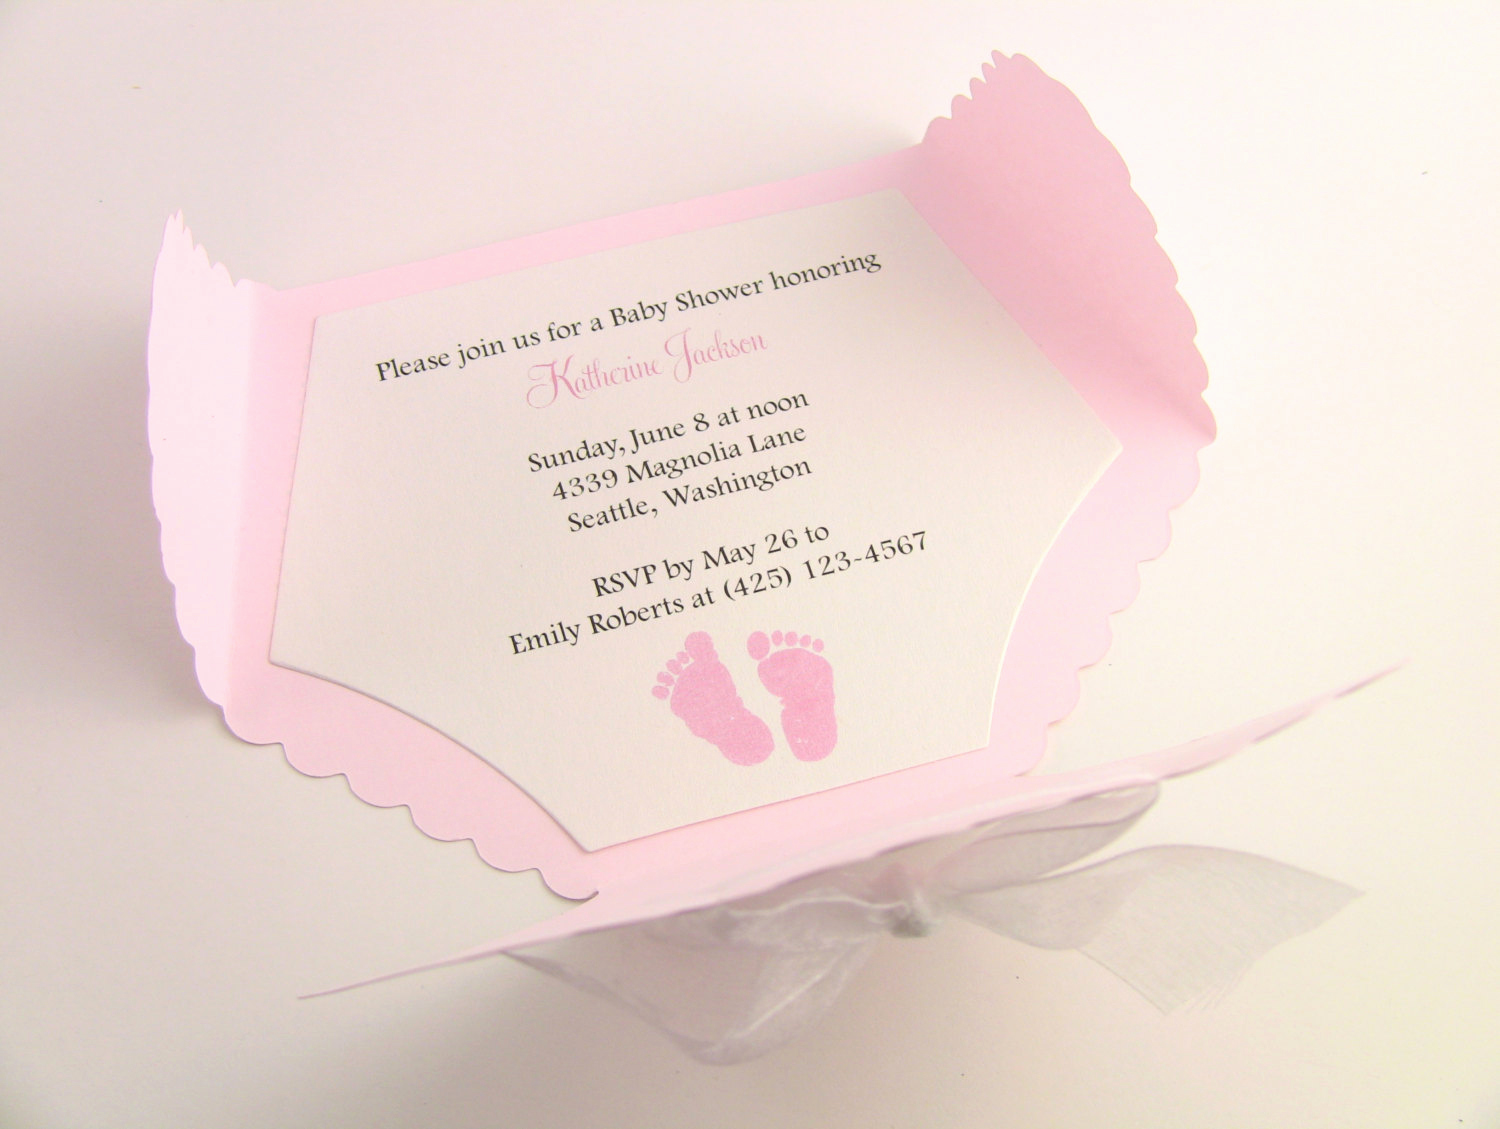 Diaper Baby Shower Invitation Templates Fresh Customize Any Color 10 Diaper Baby Shower Invitation Thank